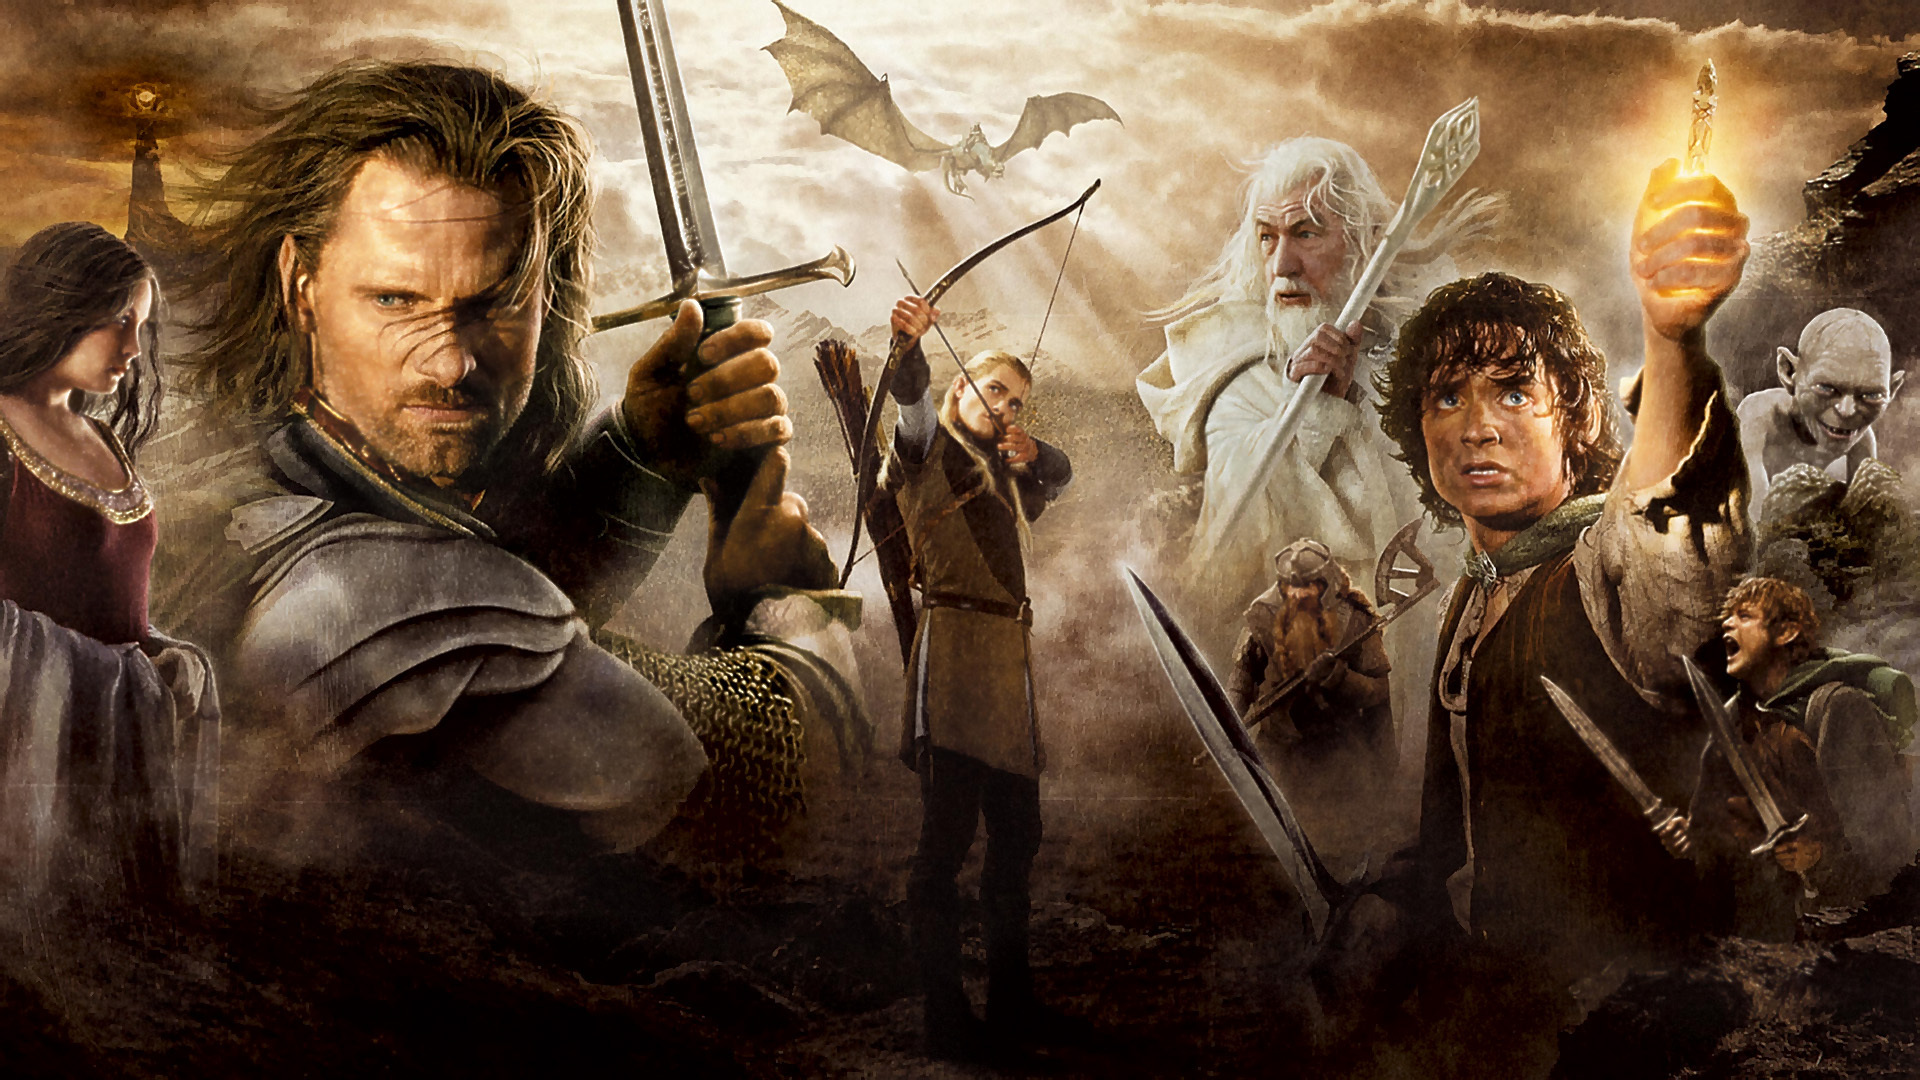 Download 1920x1080 Gt Lord Of The Rings Hd Wallpapers